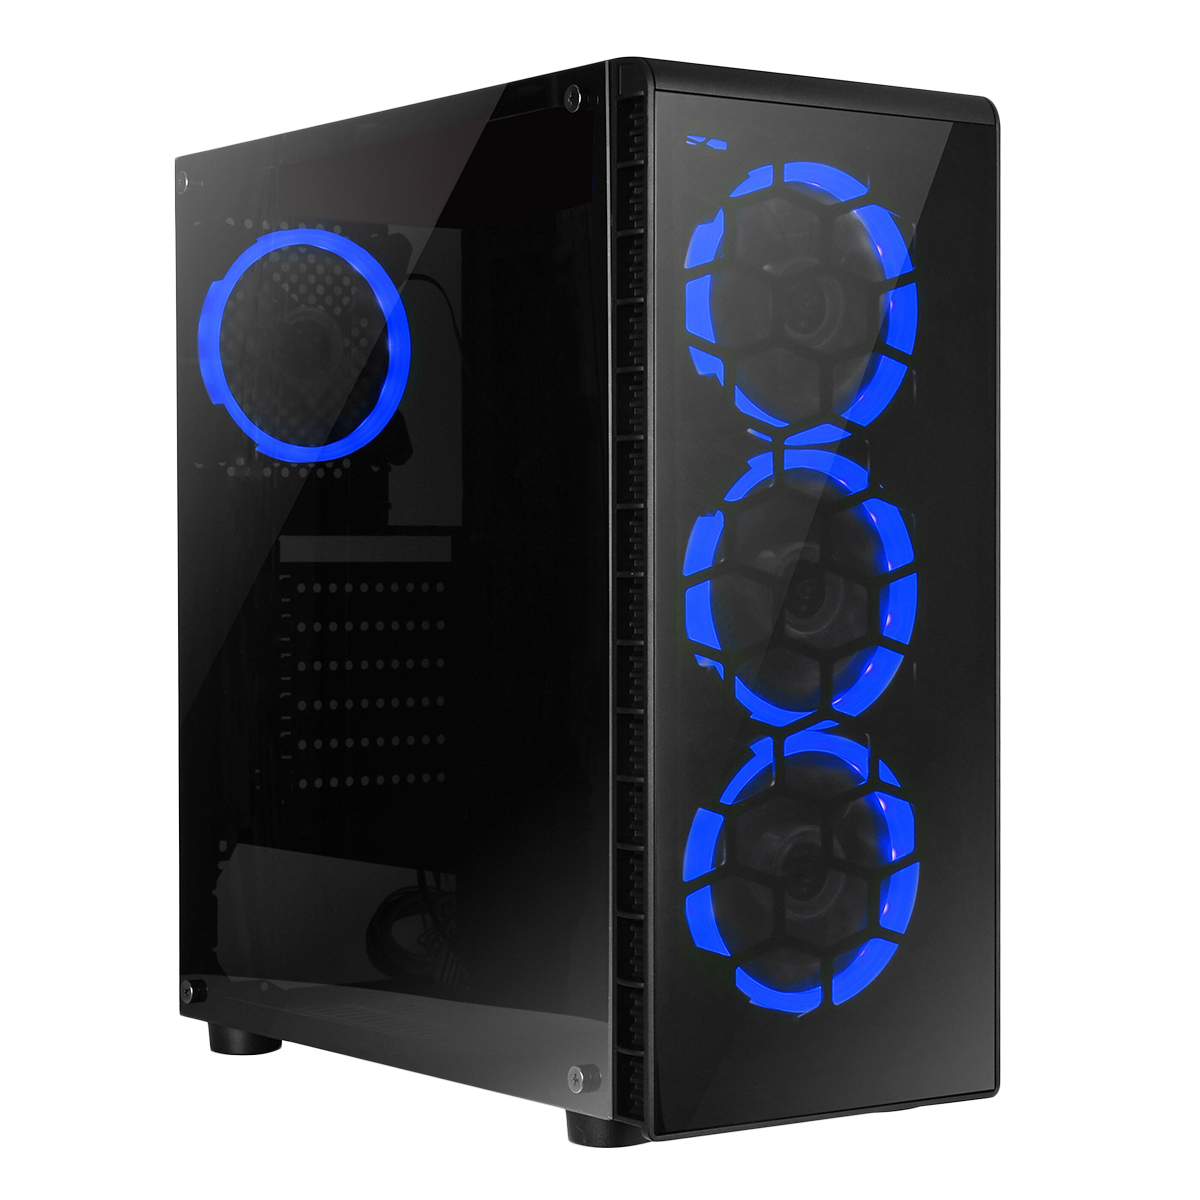 HST Raider Blue i5 Quad Core GTX 4GB 1050Ti Gaming PC